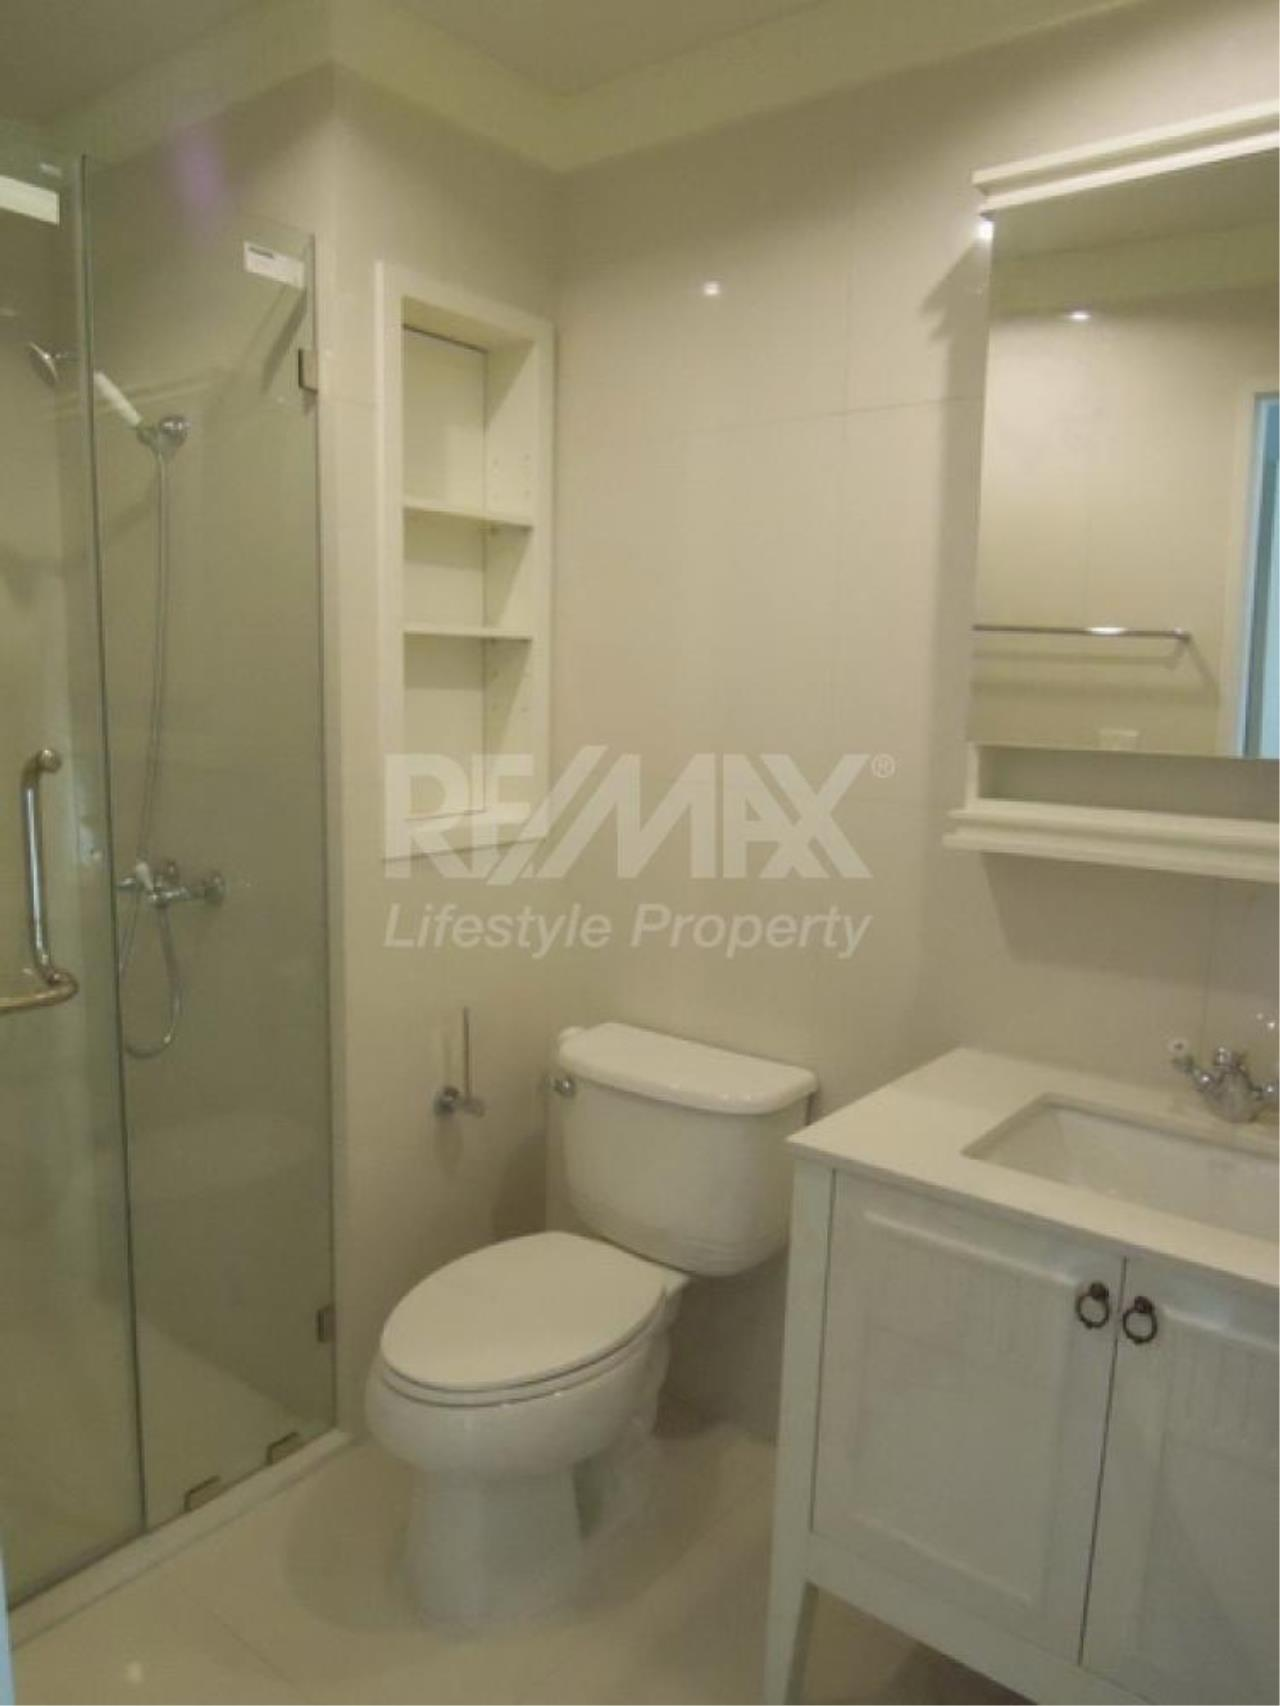 RE/MAX LifeStyle Property Agency's The Seed Memories Siam 5